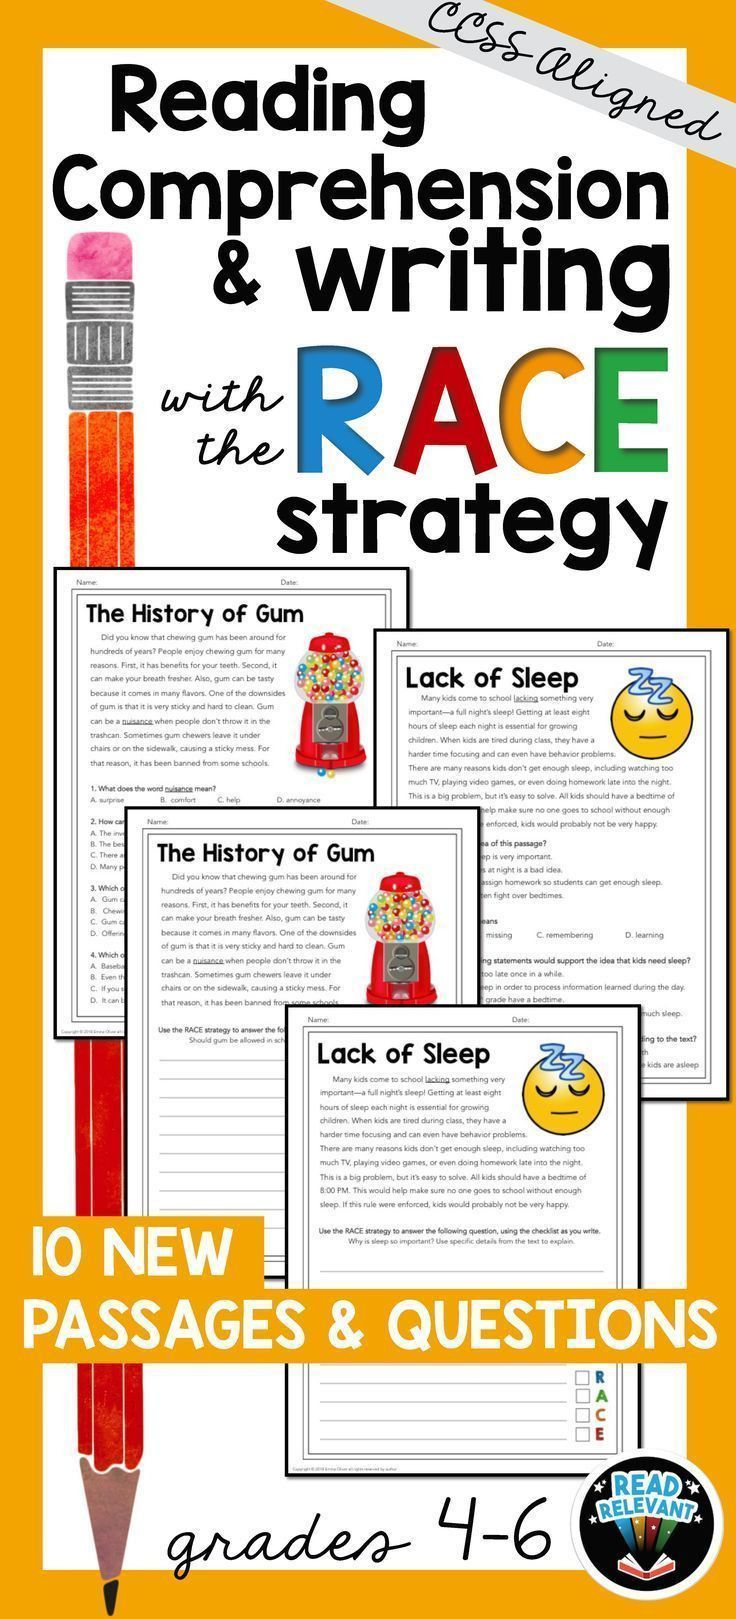 Race Writing Strategy Worksheet In 2020 Reading Comprehension Worksheets Races Writing Strategy Race Writing [ 1619 x 736 Pixel ]